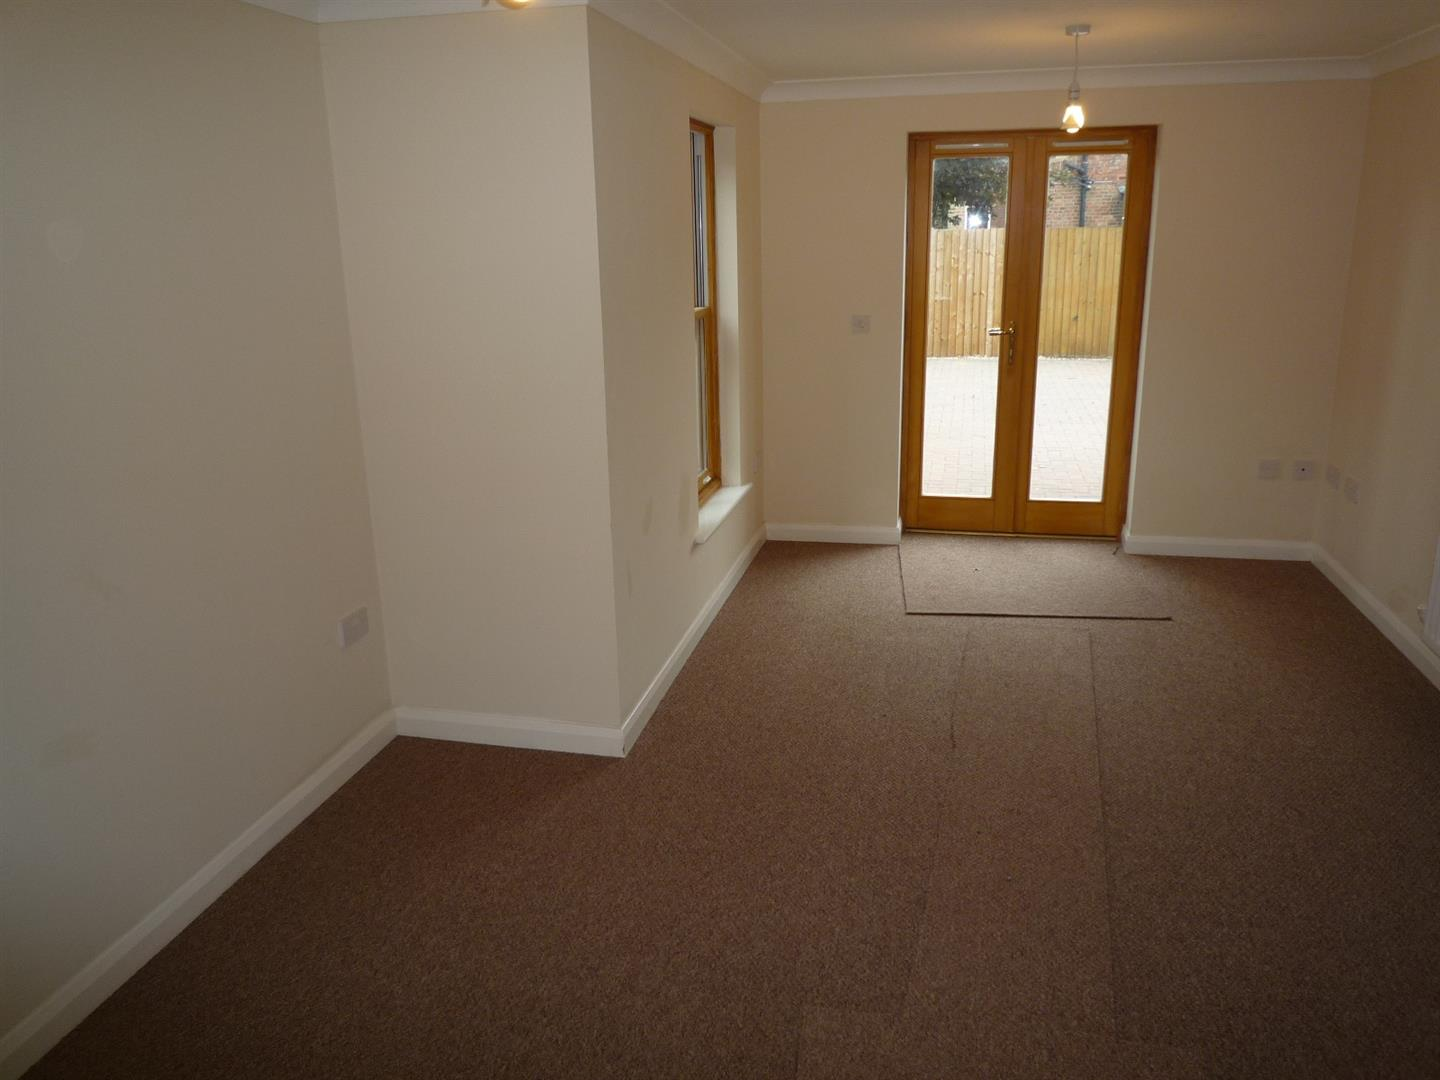 3 bed house to rent in Holbeach Spalding, PE12 7DR  - Property Image 3